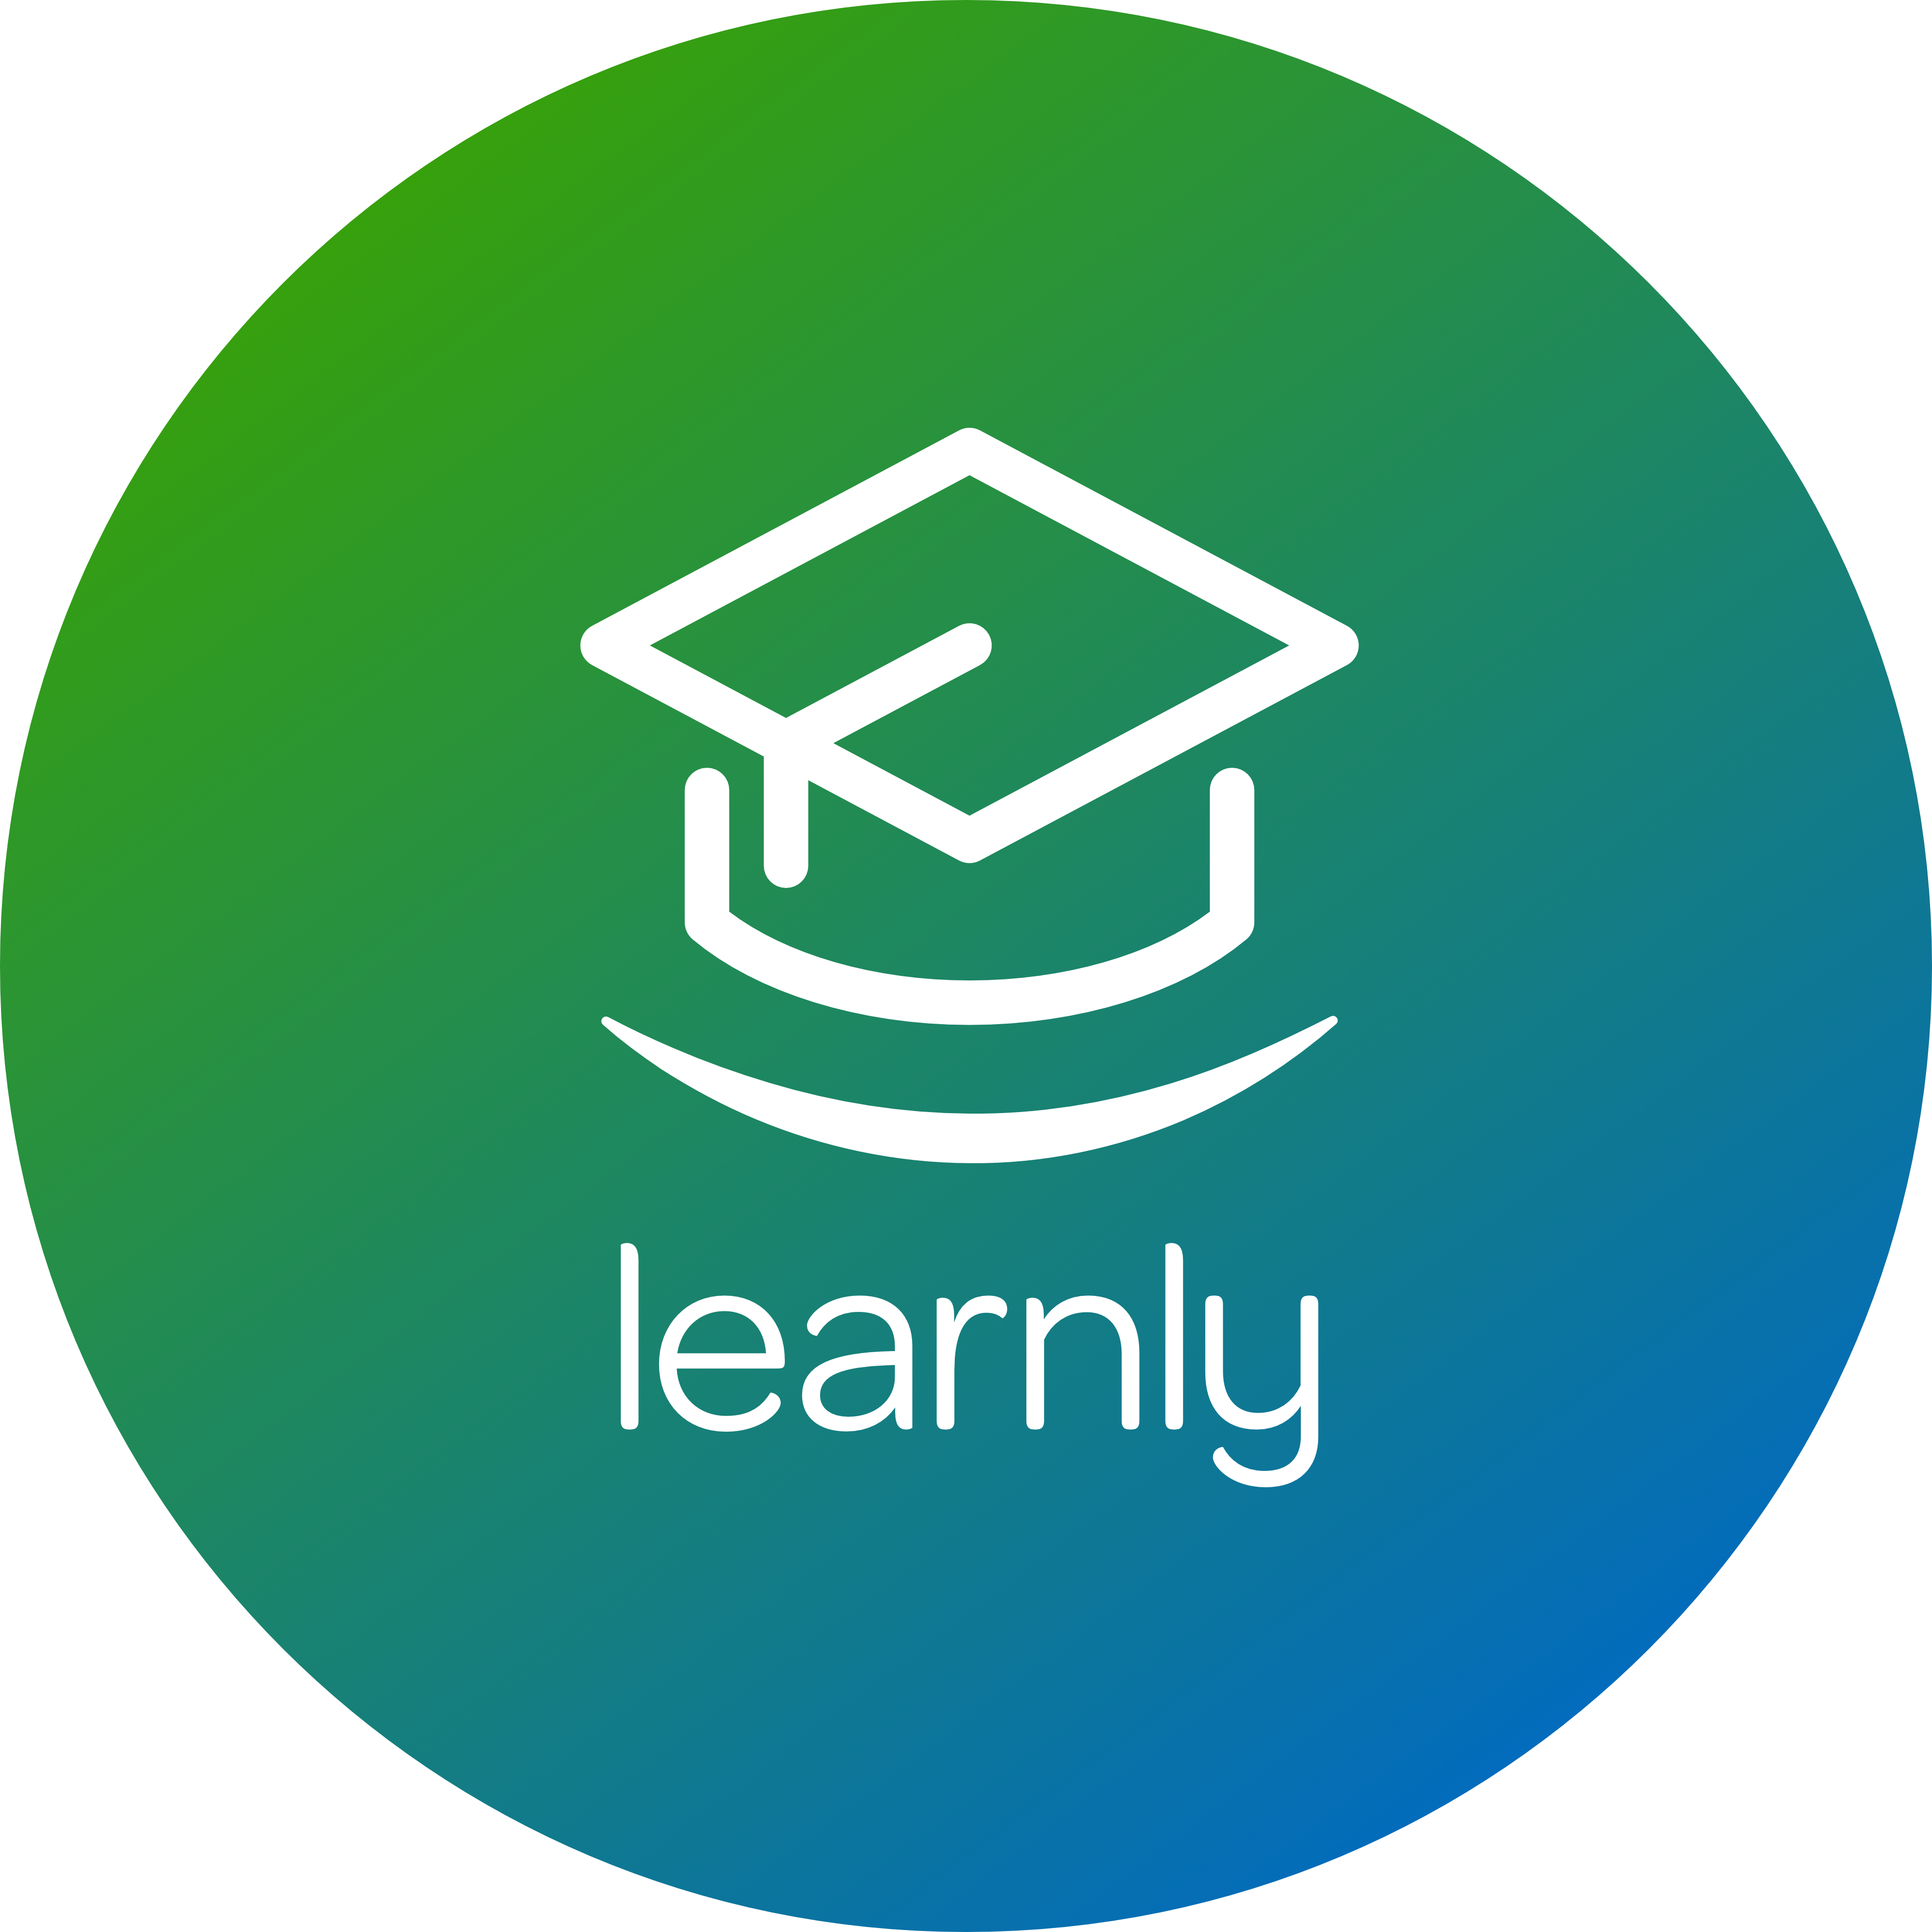 Learnly.me